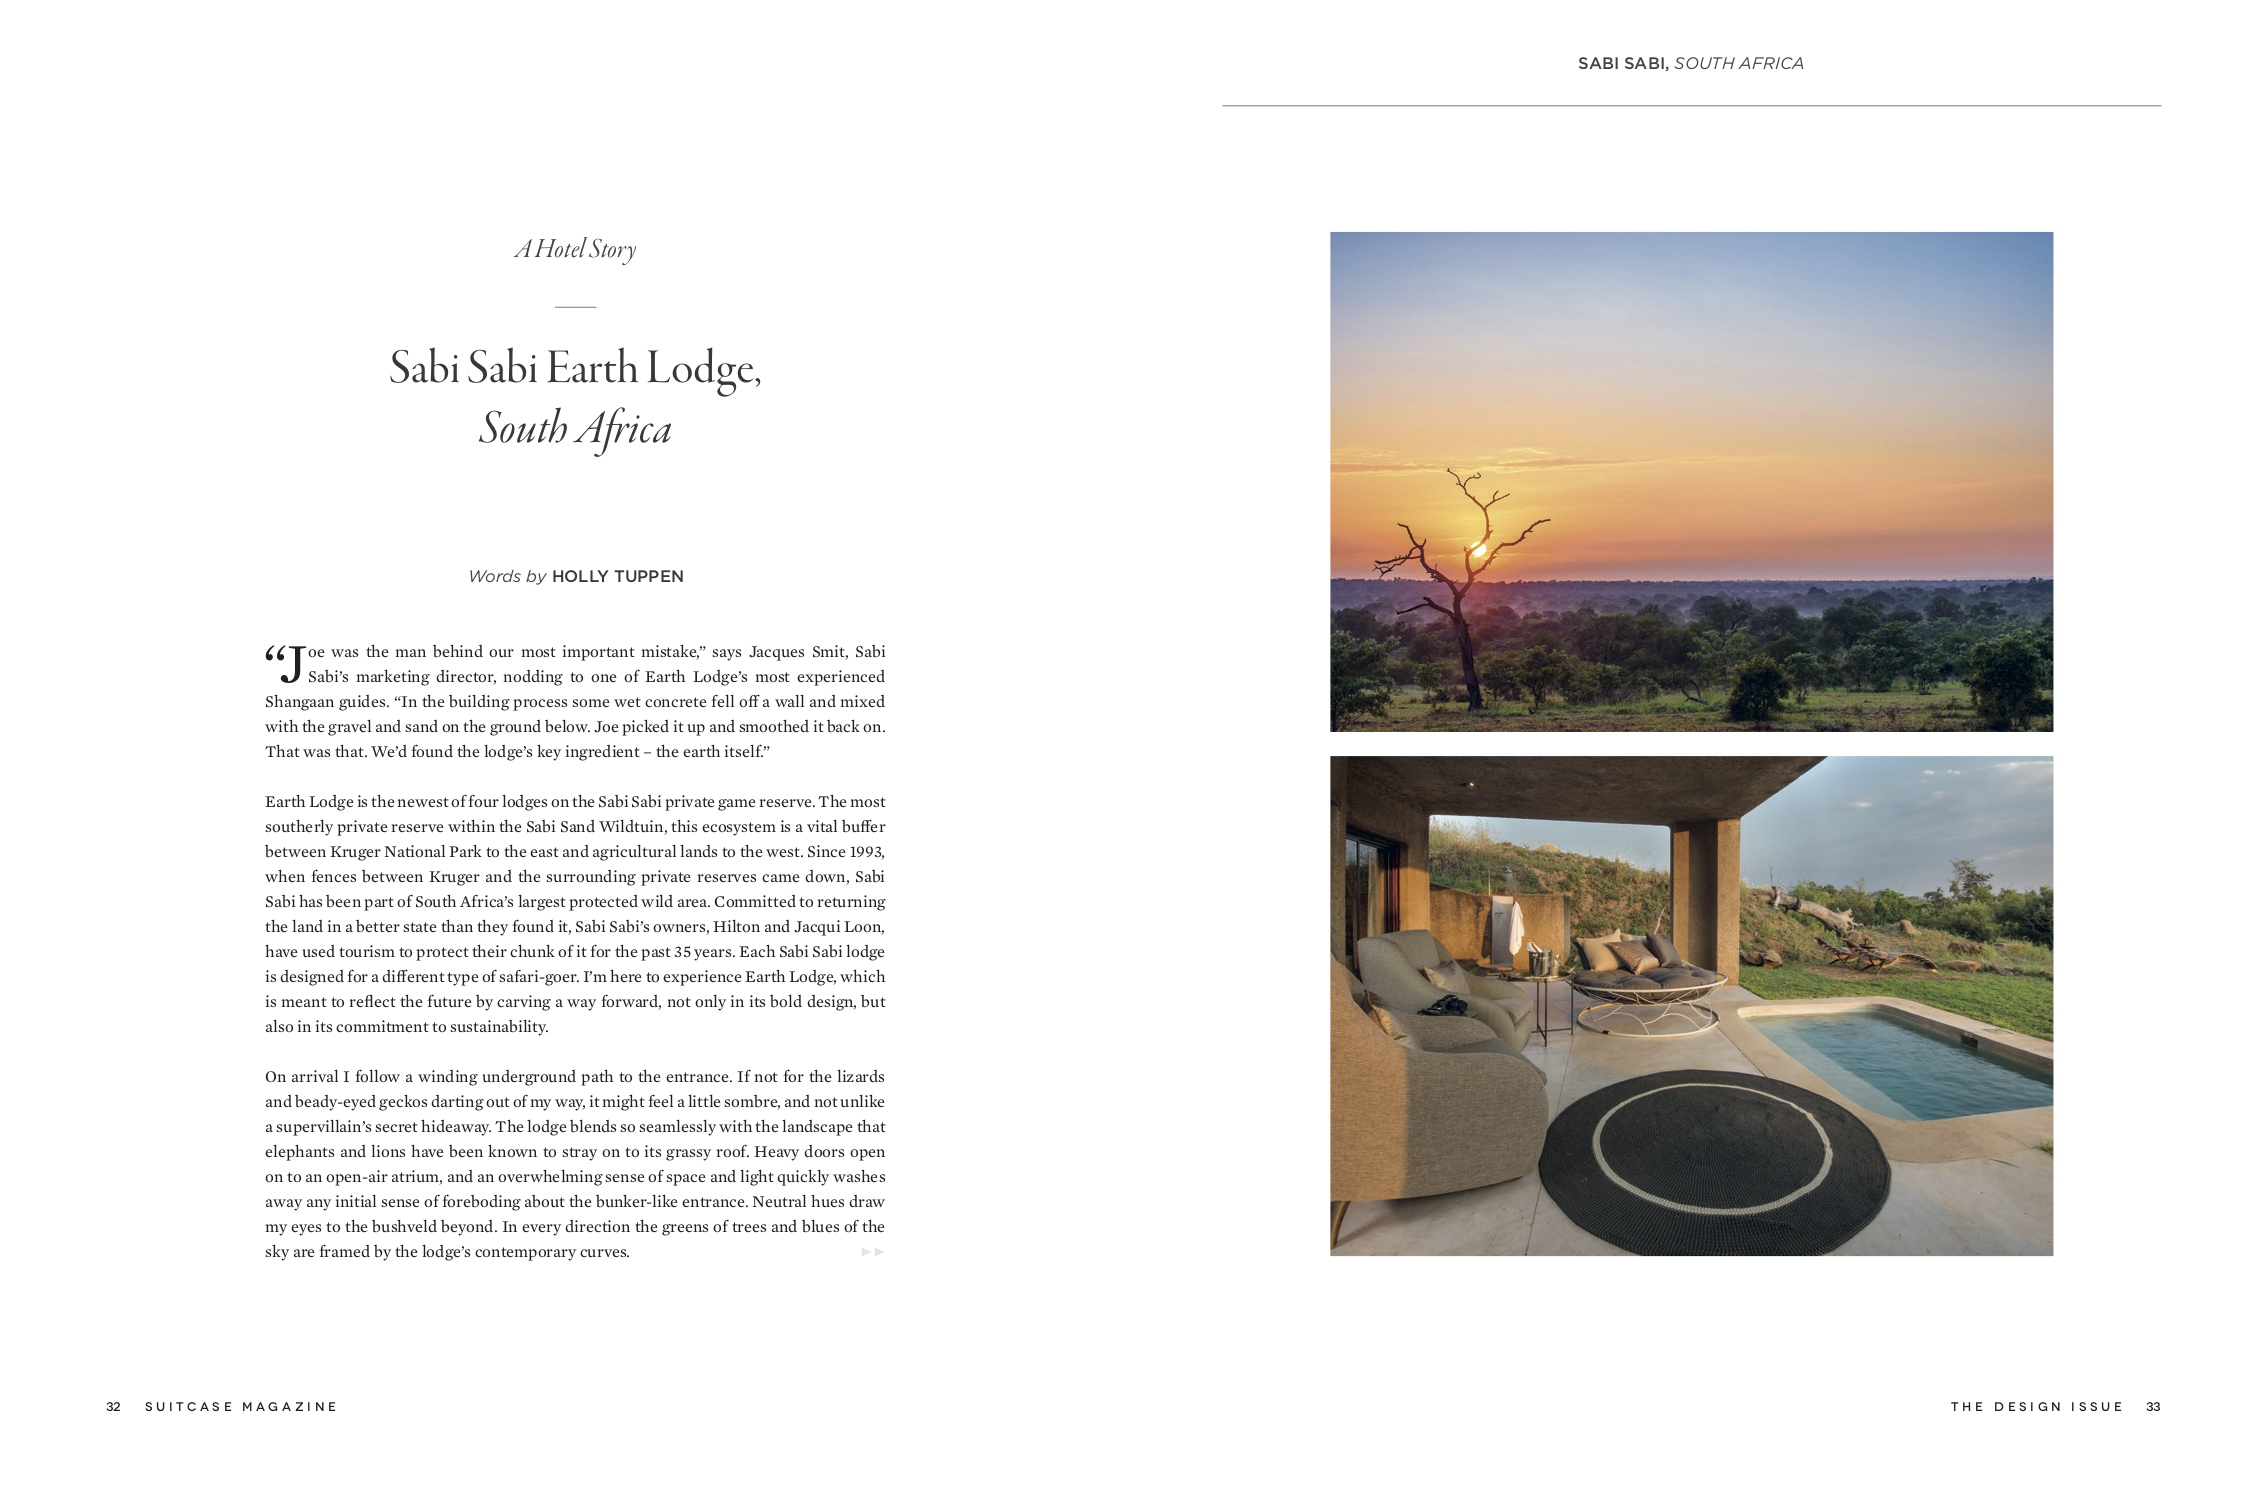 SUITCASE Magazine Vol.22 - A_Hotel_Story_-_Sabi_Sabi_Earth_Lodge.jpg